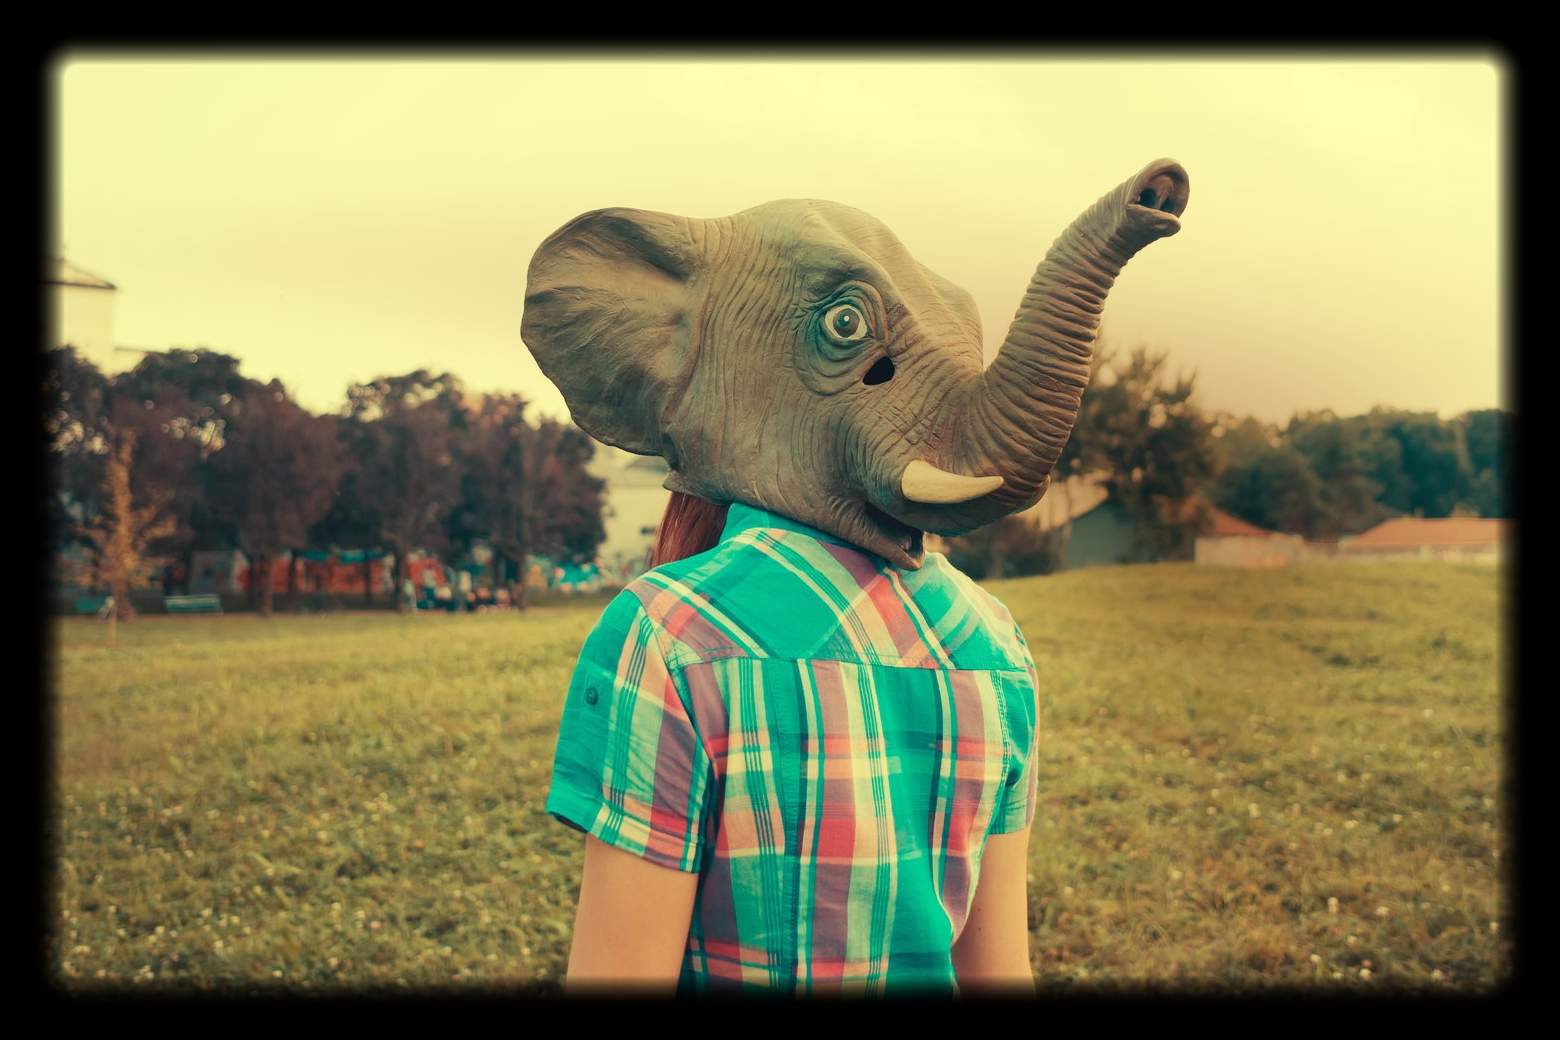 proverbial elephant